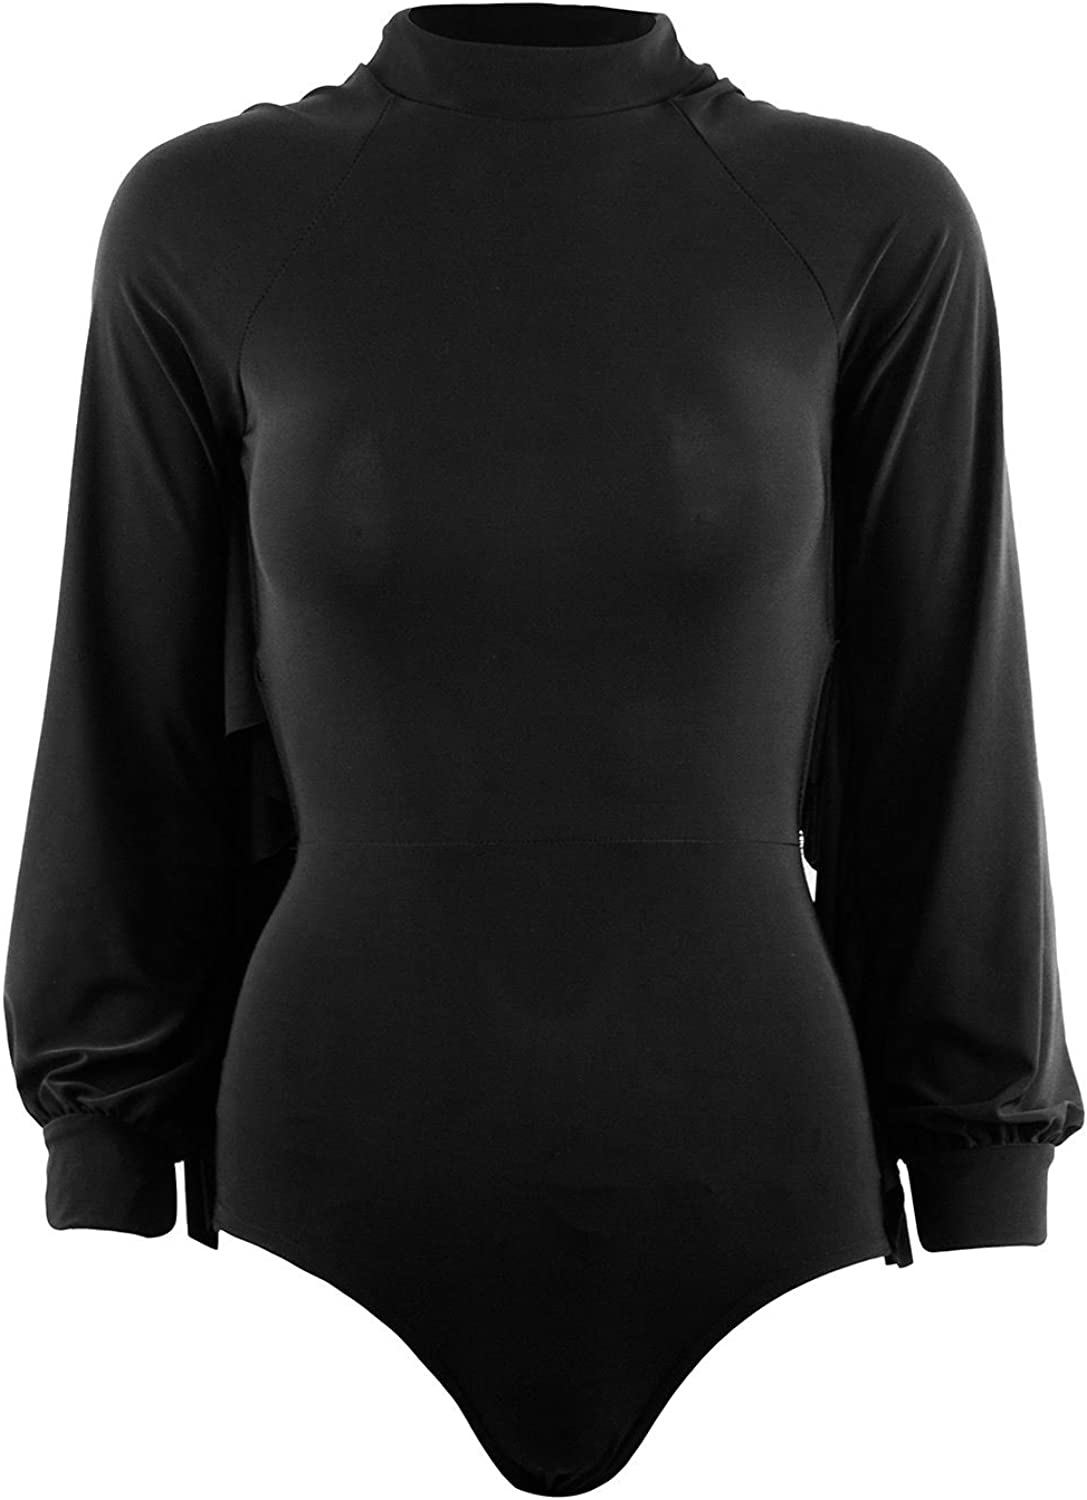 Be Jealous Womens Open Backless Frill Bodysuit Stretch Polo High Neck Leotard Top